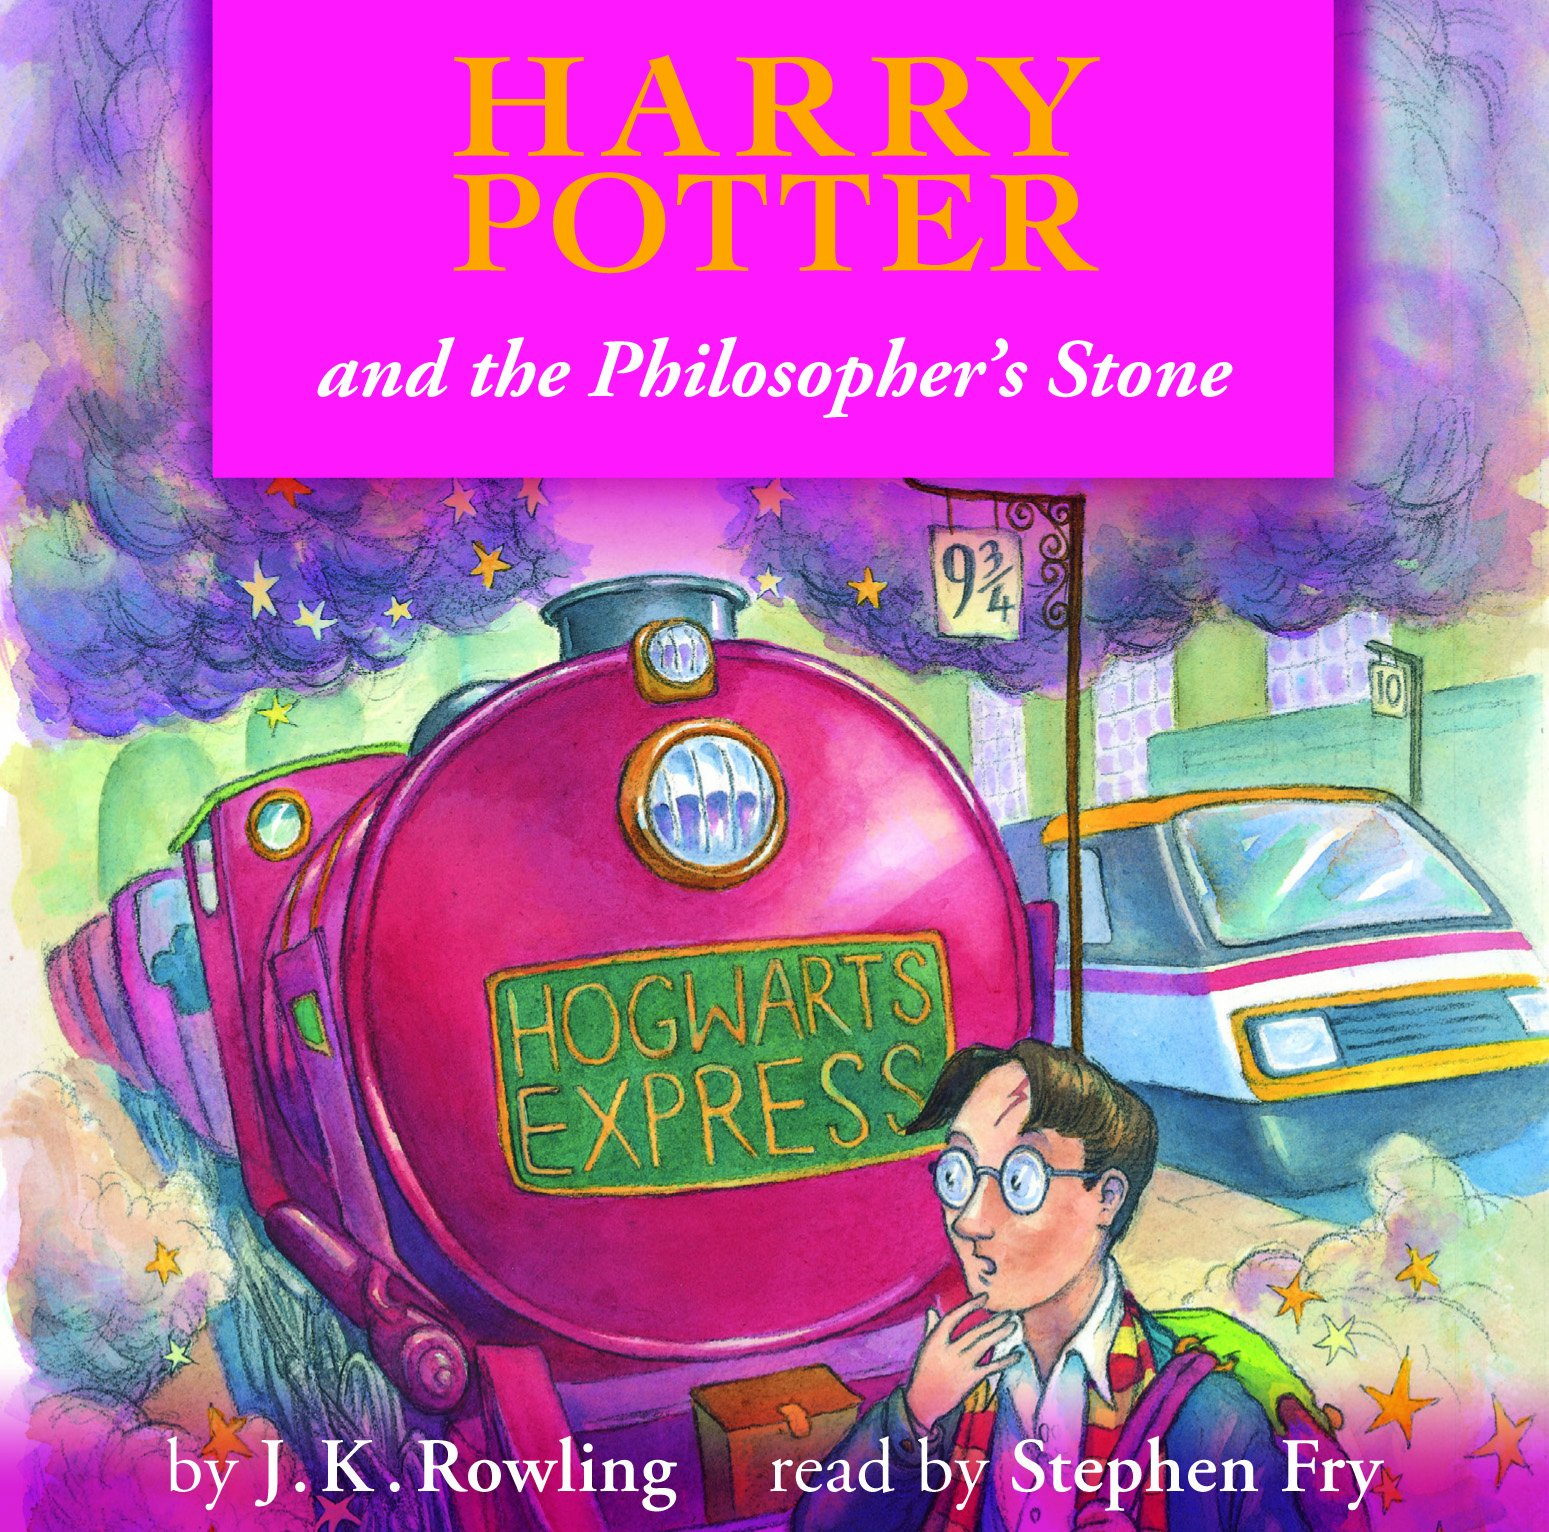 harry potter and the philosophers stone audiobook stephen fry free download